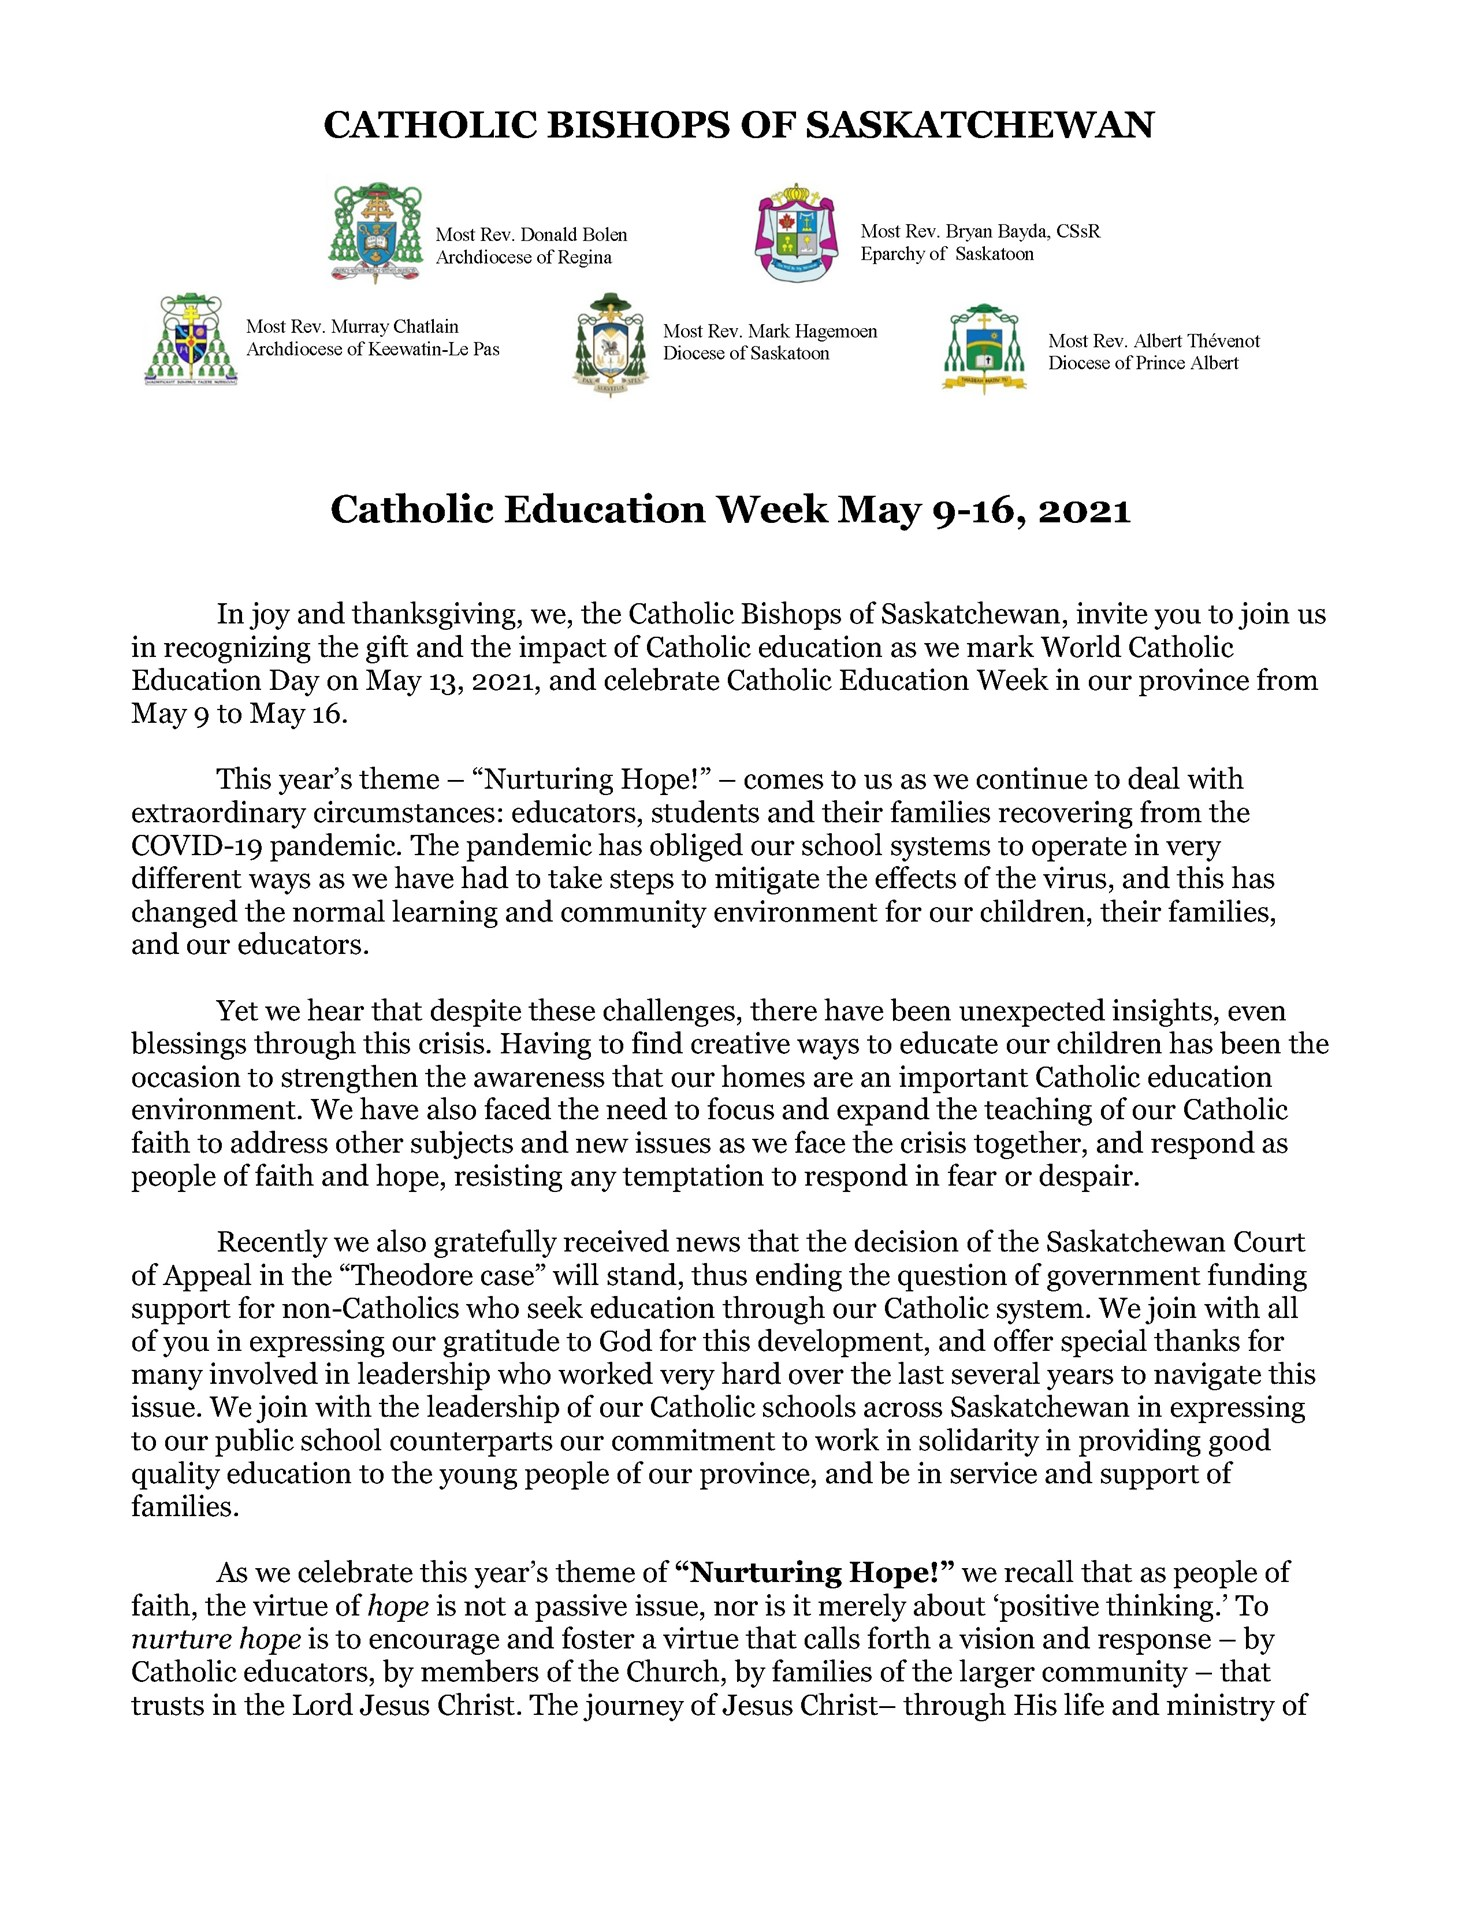 SK Bishops re Catholic Education Week May 9-16 2021_Page_1.jpg